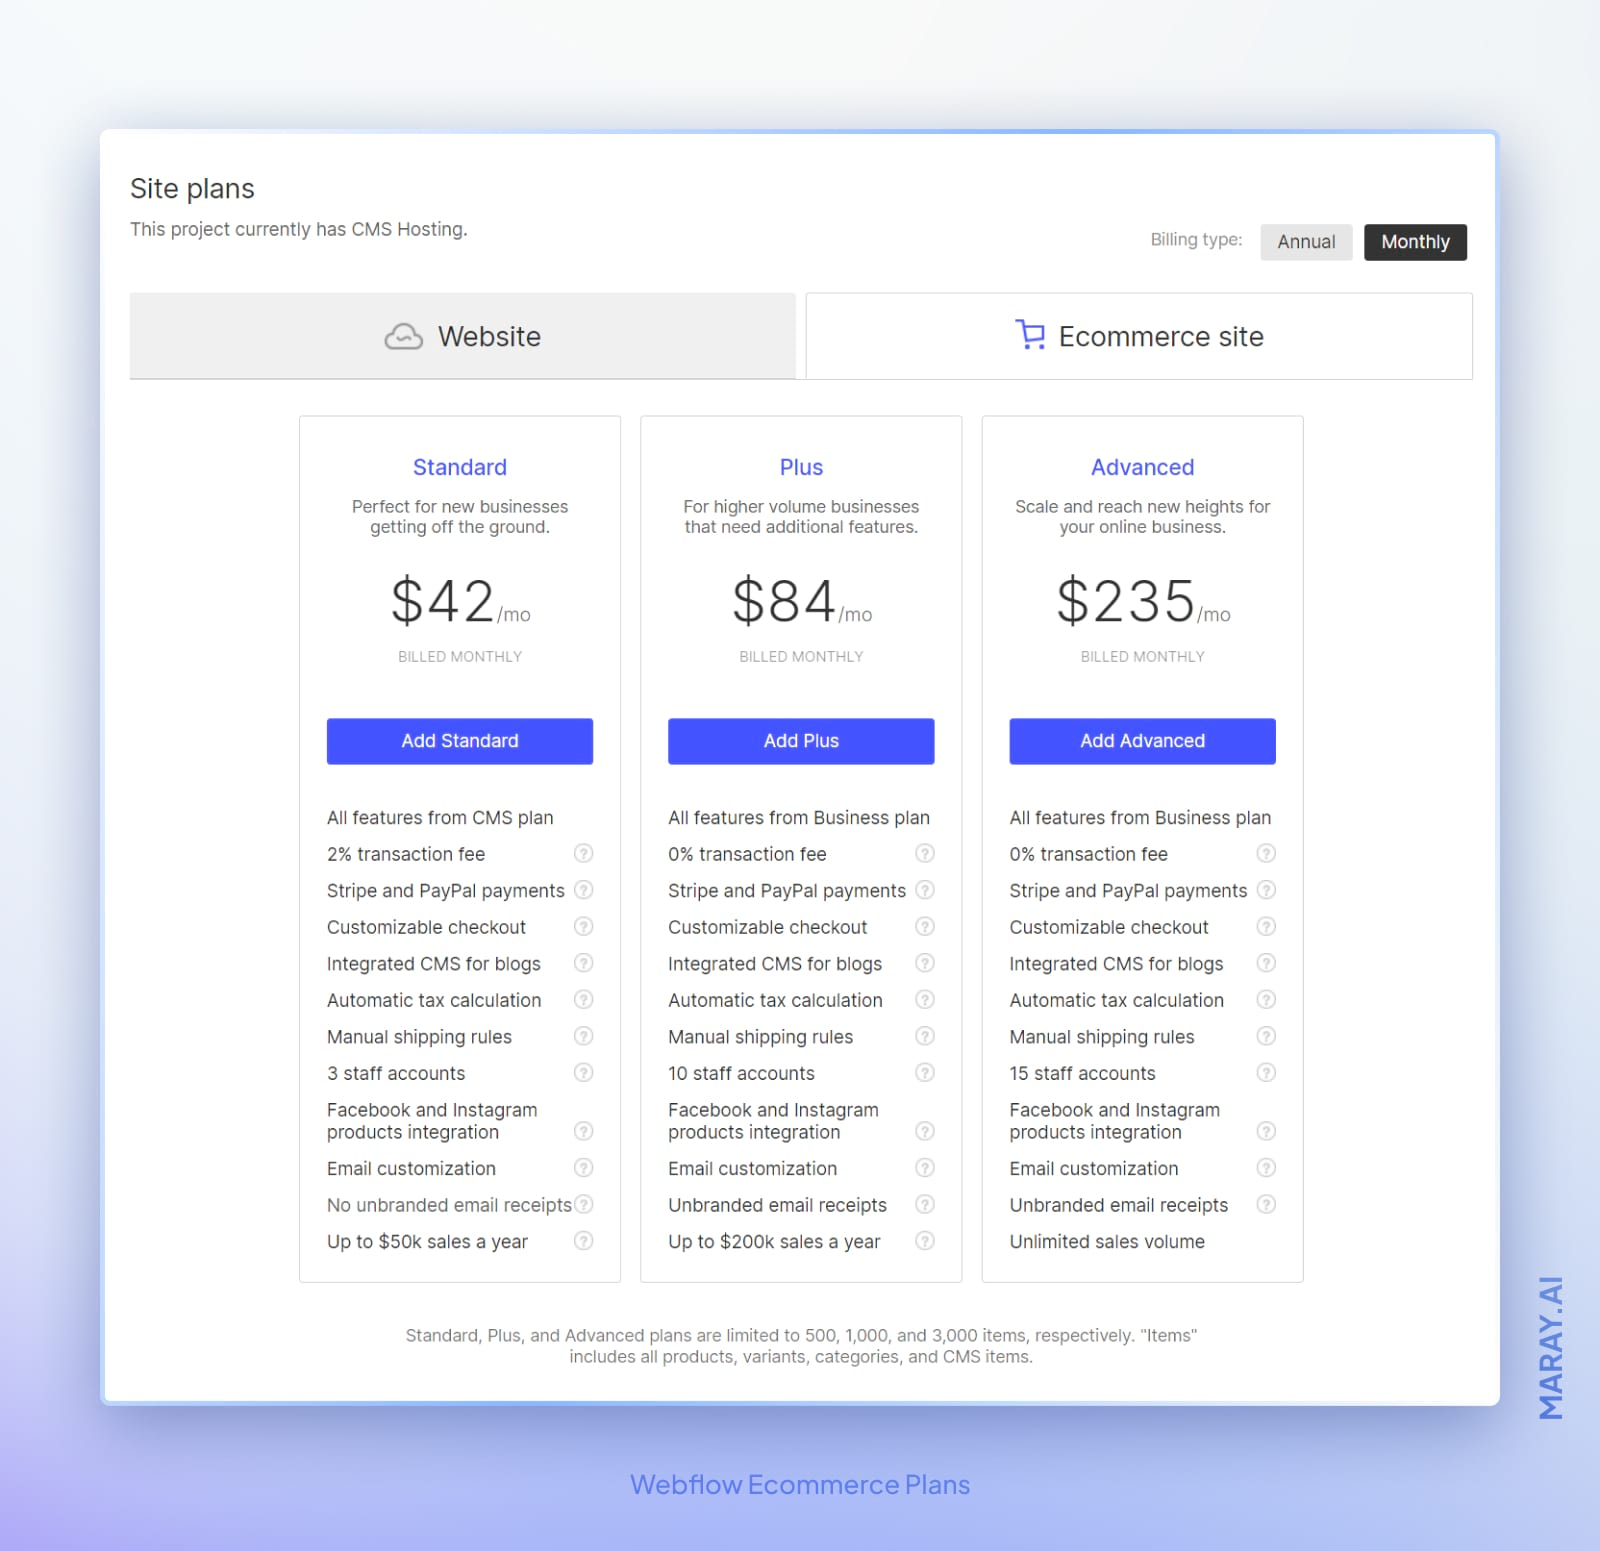 Webflow's pricing for ecommerce site plans.